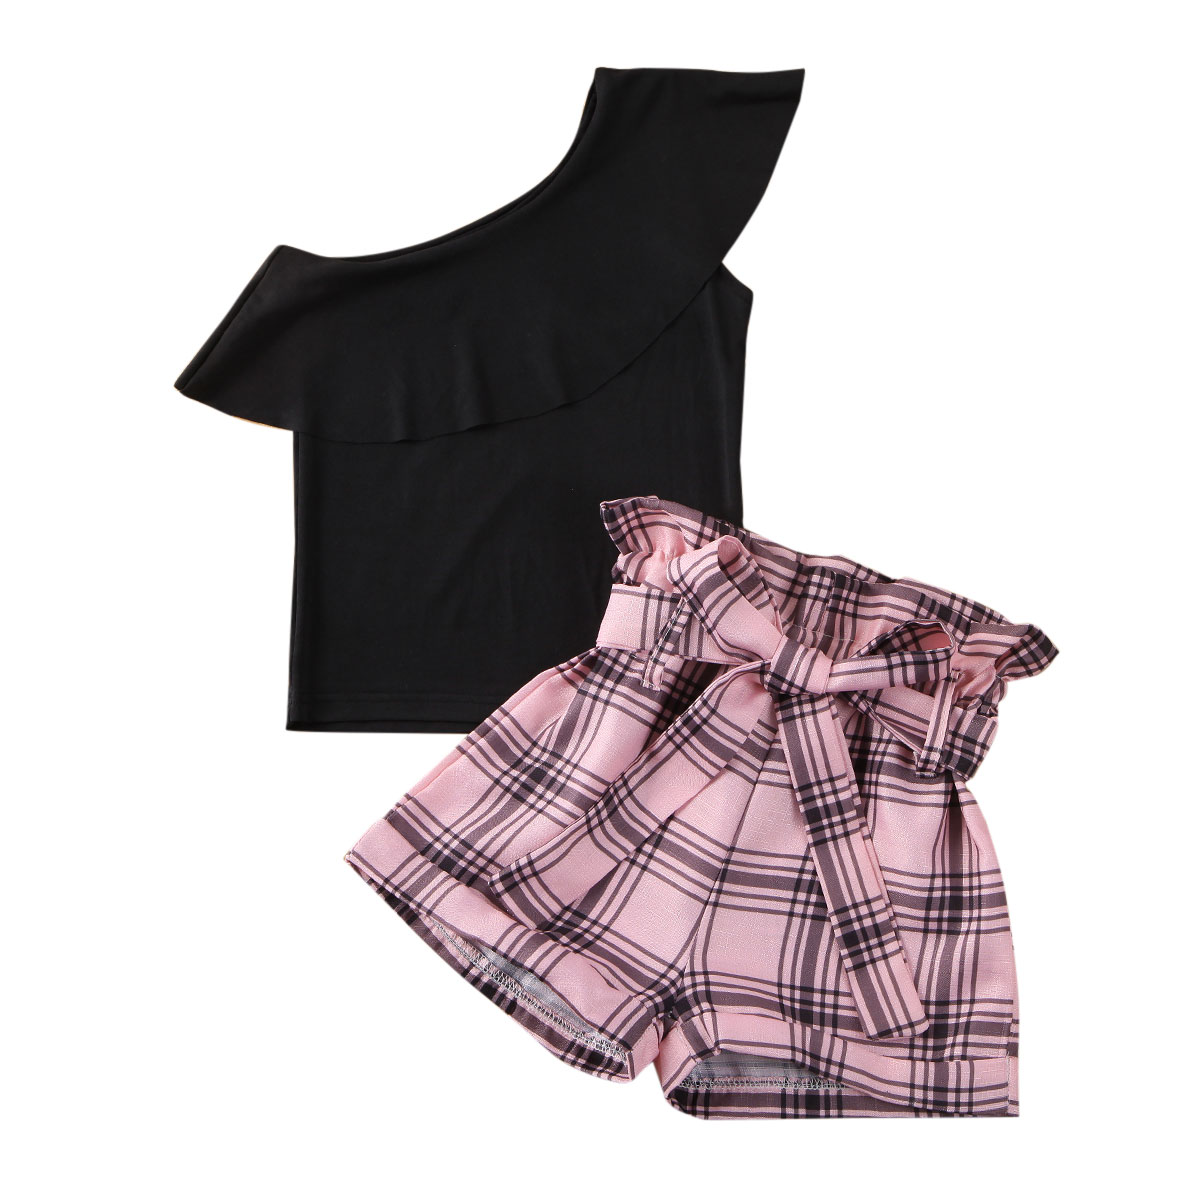 Pudcoco Toddler Baby Girl Clothes Solid Color Off Shoulder Ruffle Tops Plaids Short Pants 2Pcs Outfits Cotton Clothes Set